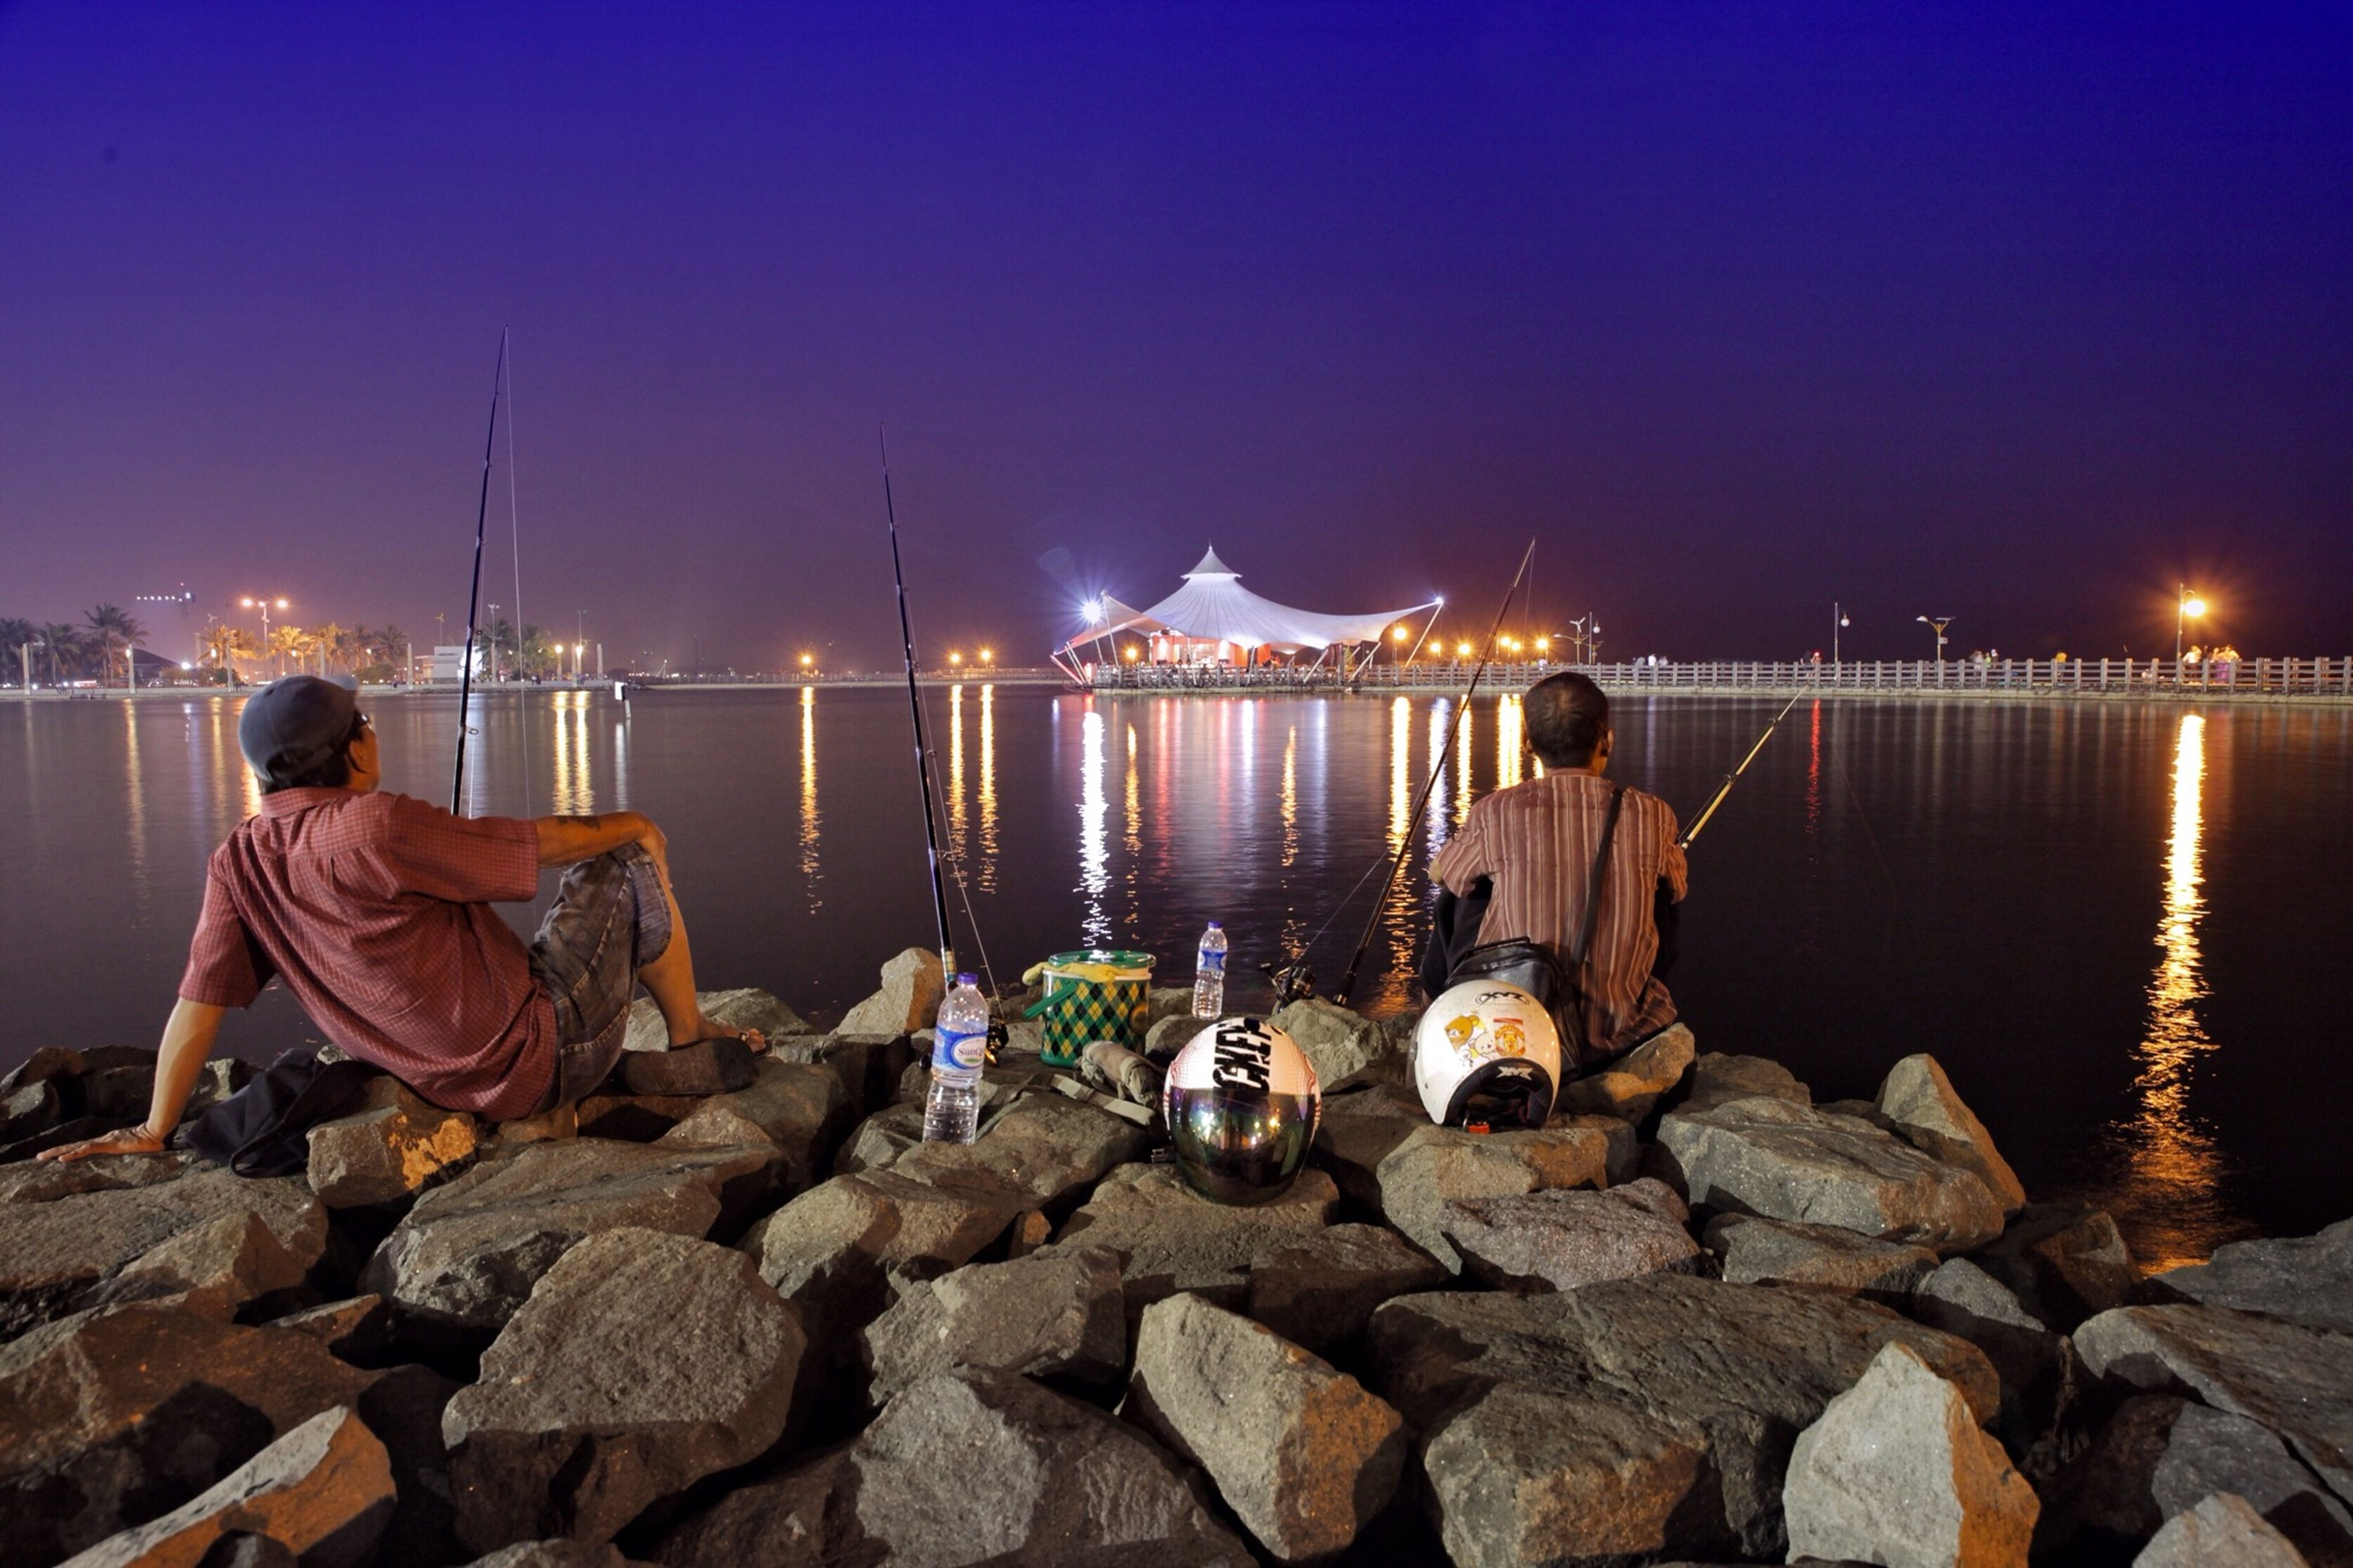 water, lifestyles, men, rear view, leisure activity, illuminated, sitting, standing, person, night, pier, casual clothing, river, togetherness, sea, sky, built structure